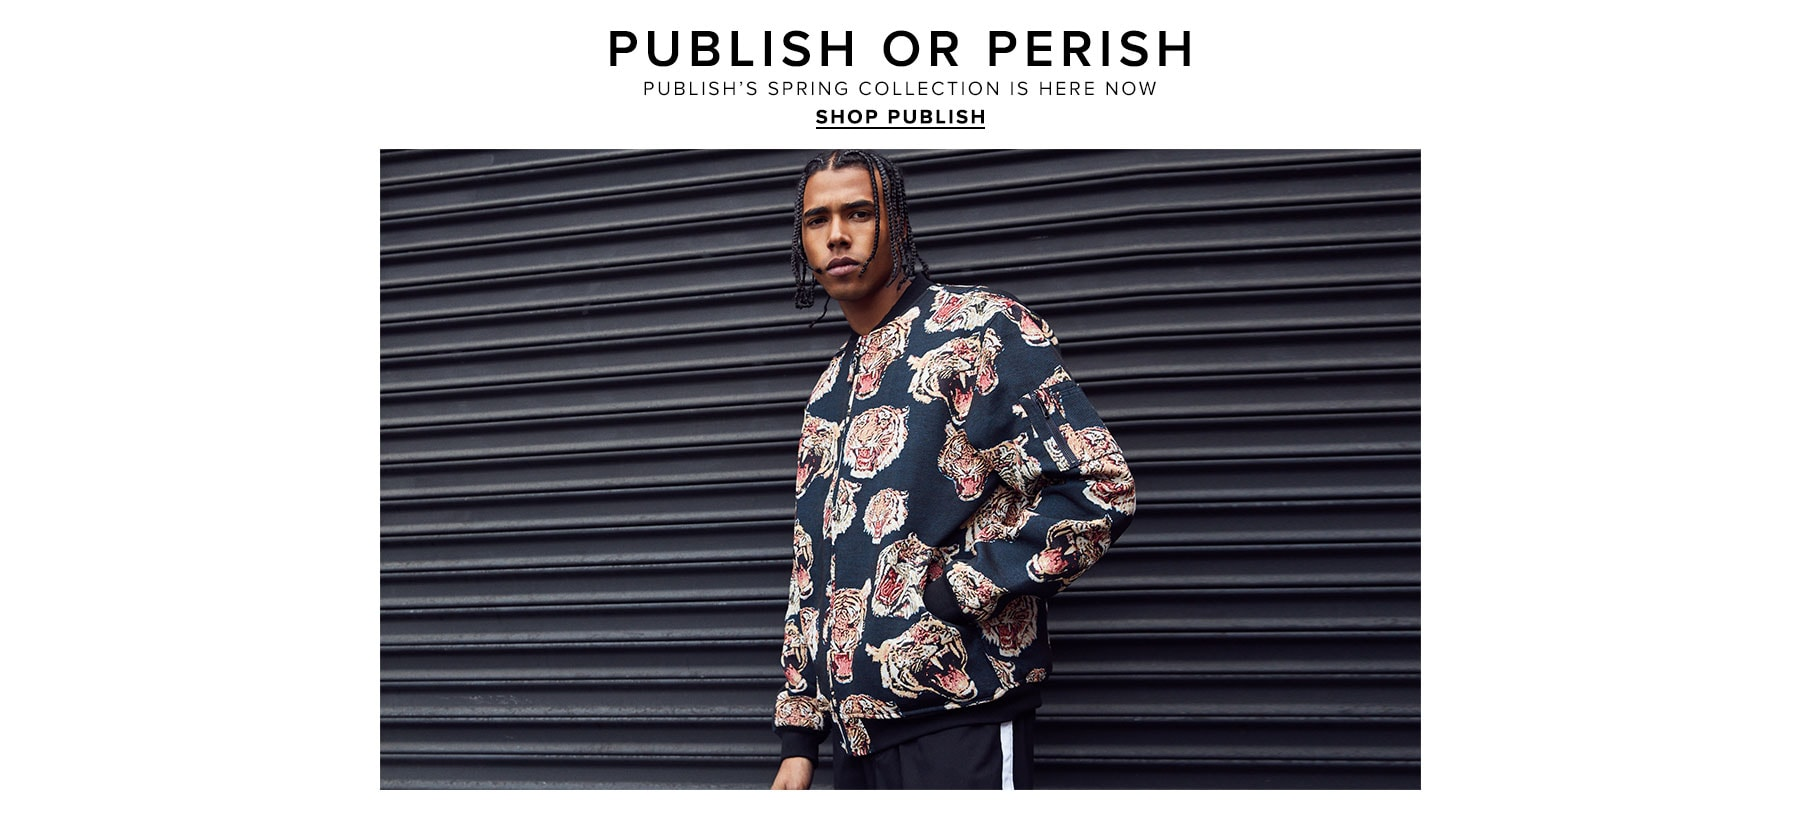 Publish or Perish. Publish's spring collection is here now. Shop Publish.